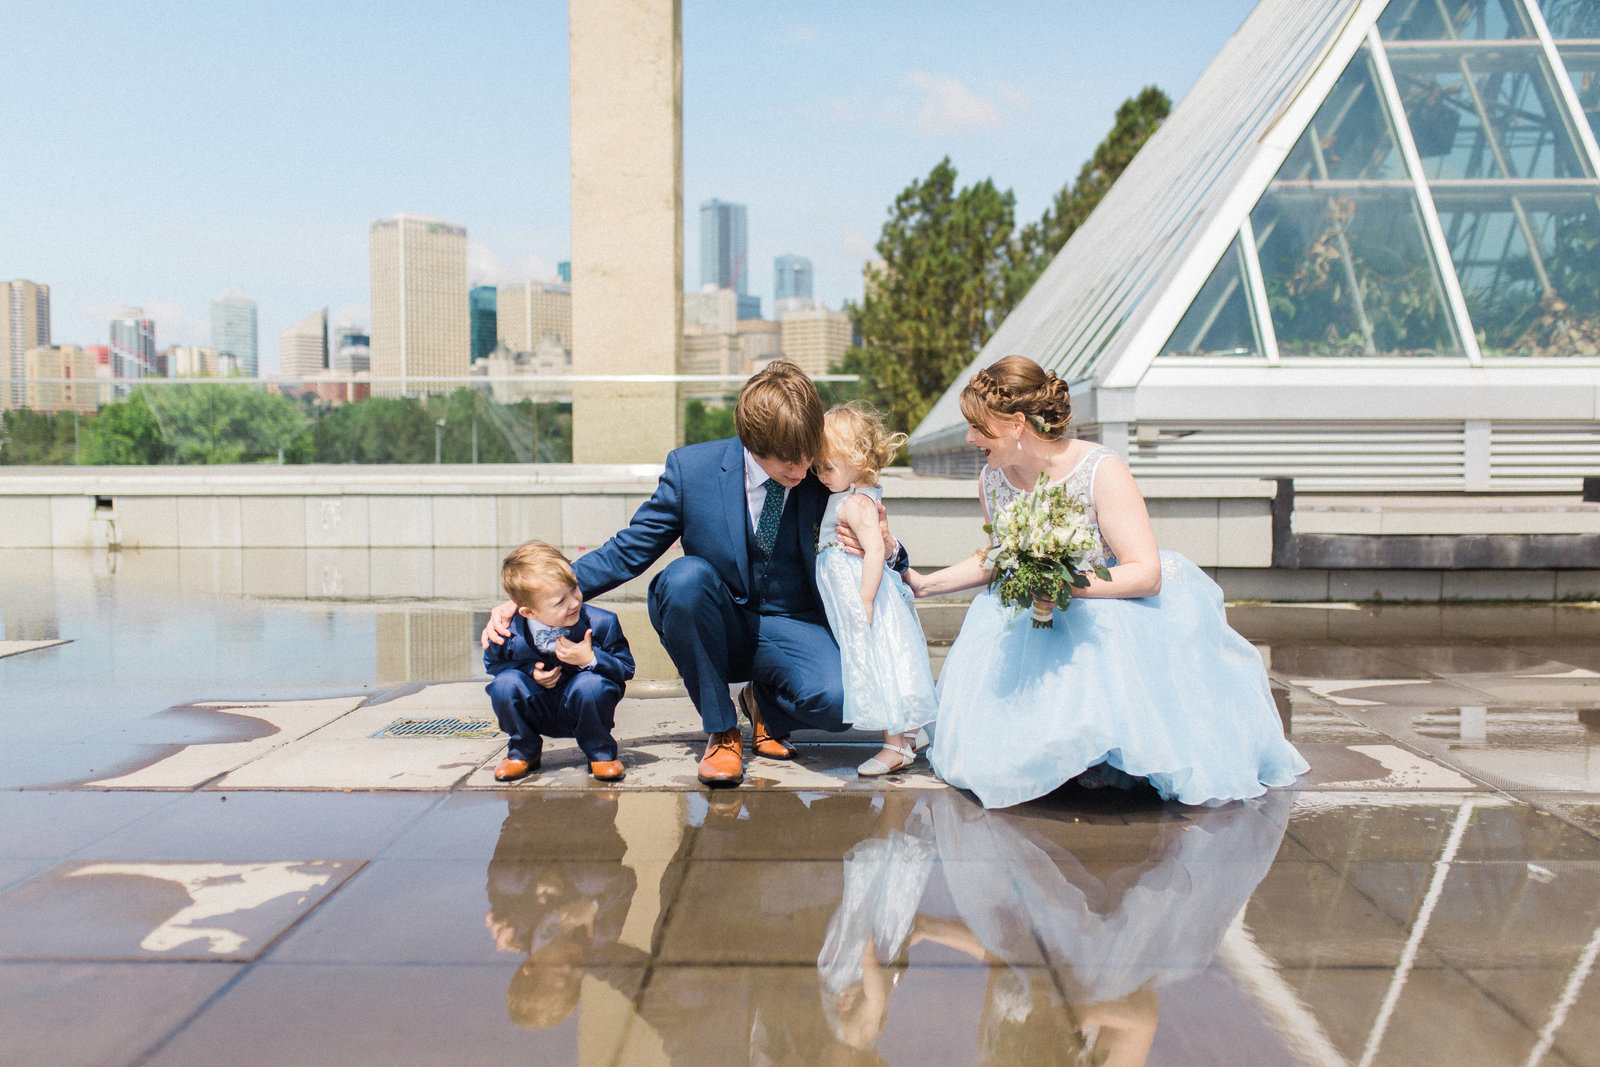 Muttart Conservatory Wedding - Edmonton Wedding Photographer33